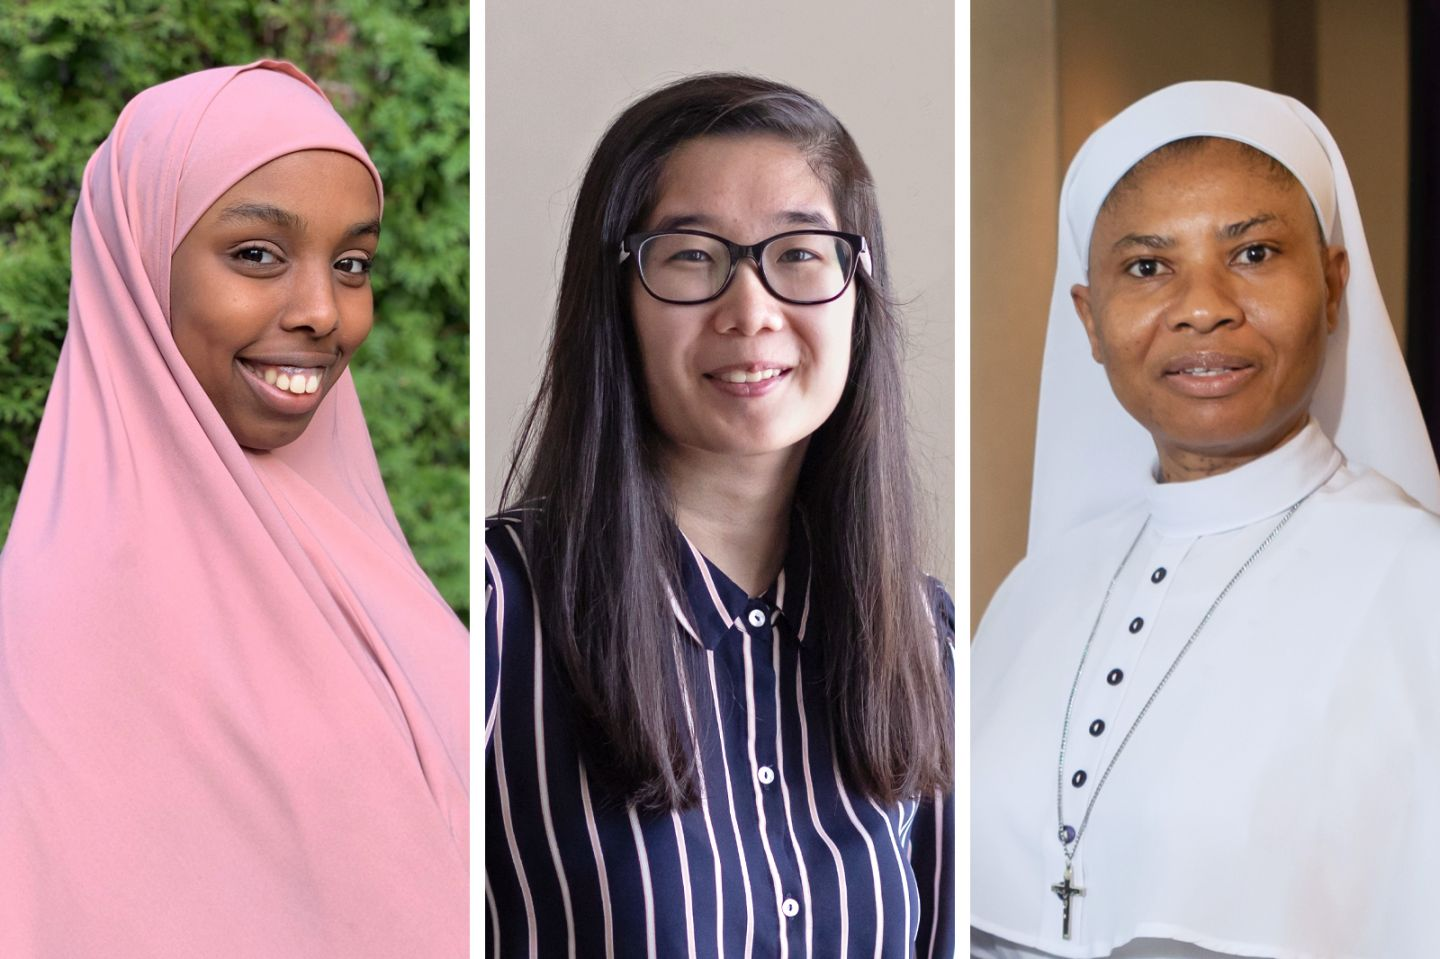 Headshots of Master of Public Health in Global Health students, Nastehakeyf Sheikhomar MPH'22 (in pink) and Vy Phung MPH'21 (in stripes), and Assistant Professor of Public Health Sr. Angela Ekwonye, PhD (in white)